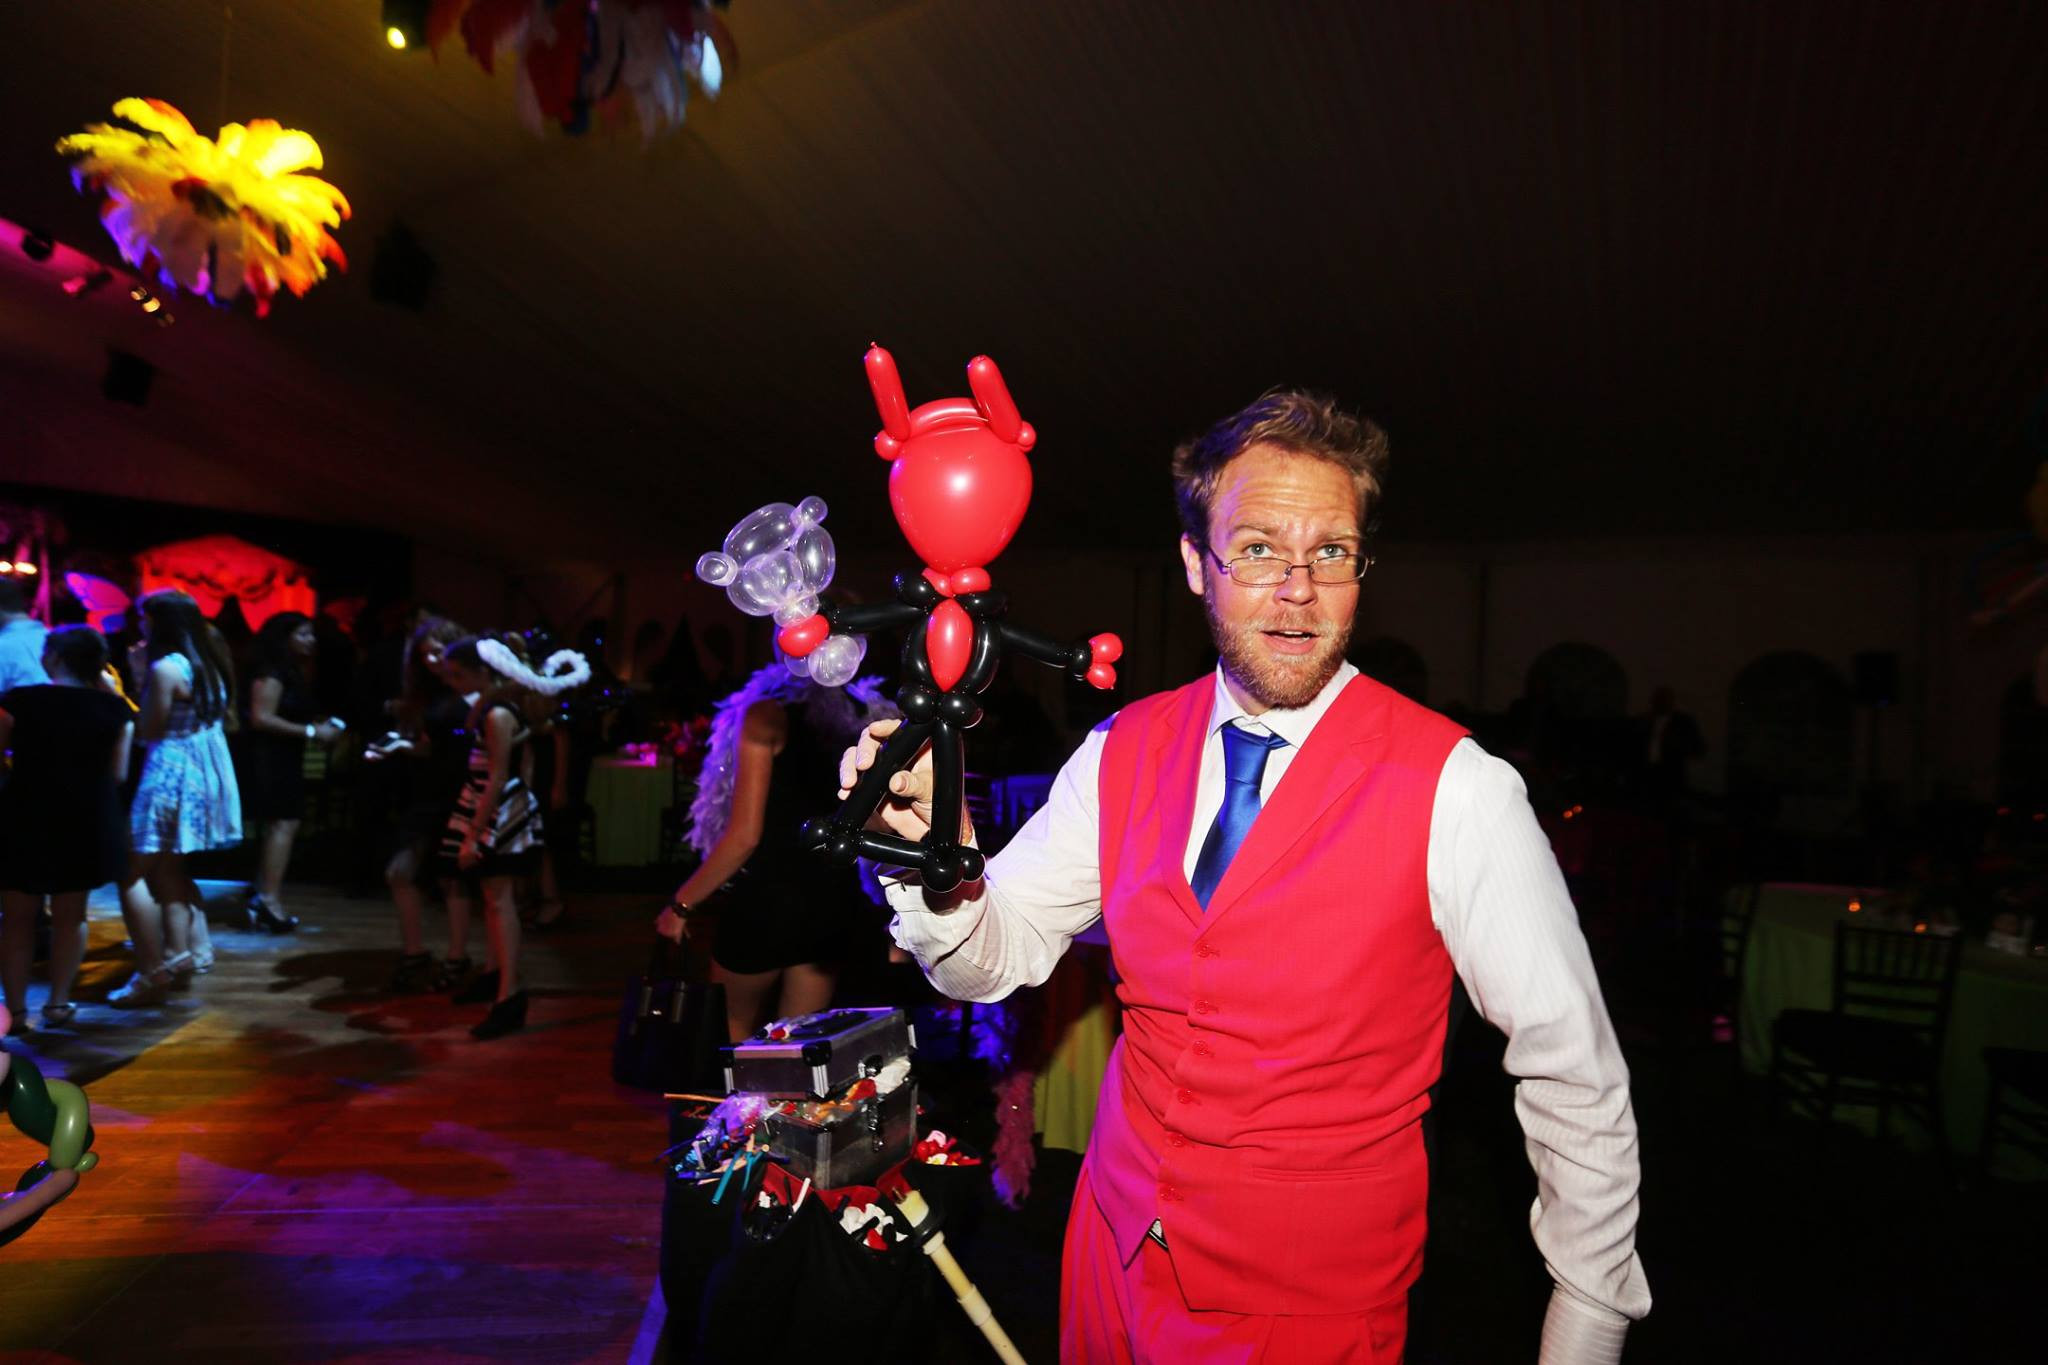 Strolling Balloon Art, Comedy and Magic